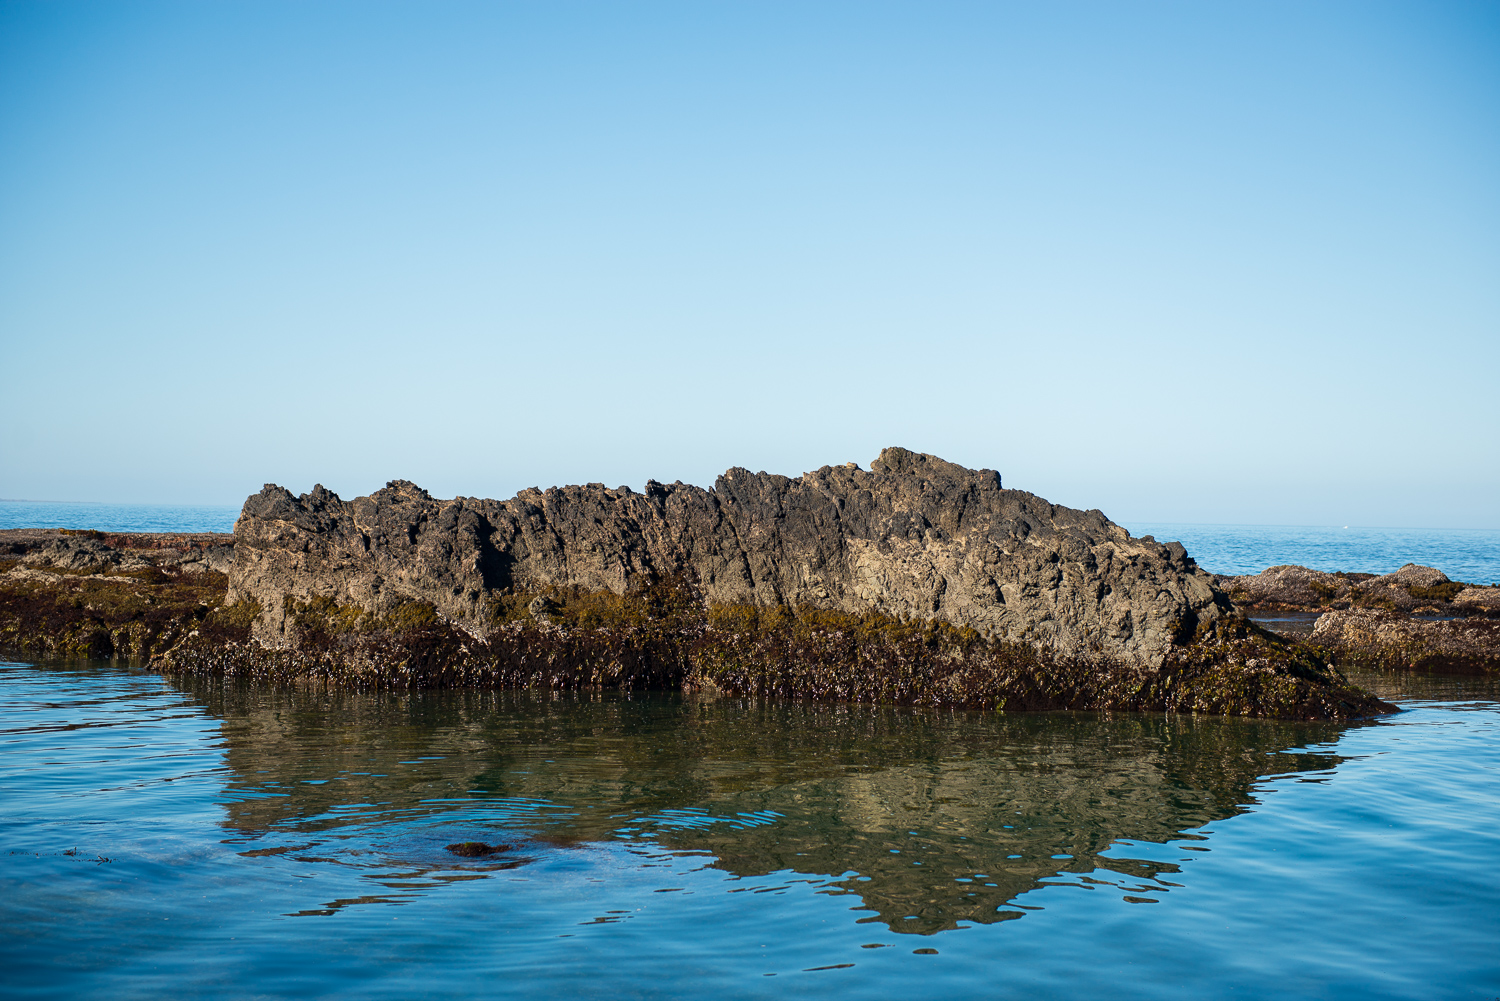 Rocks and Mussels, Bruhel Point